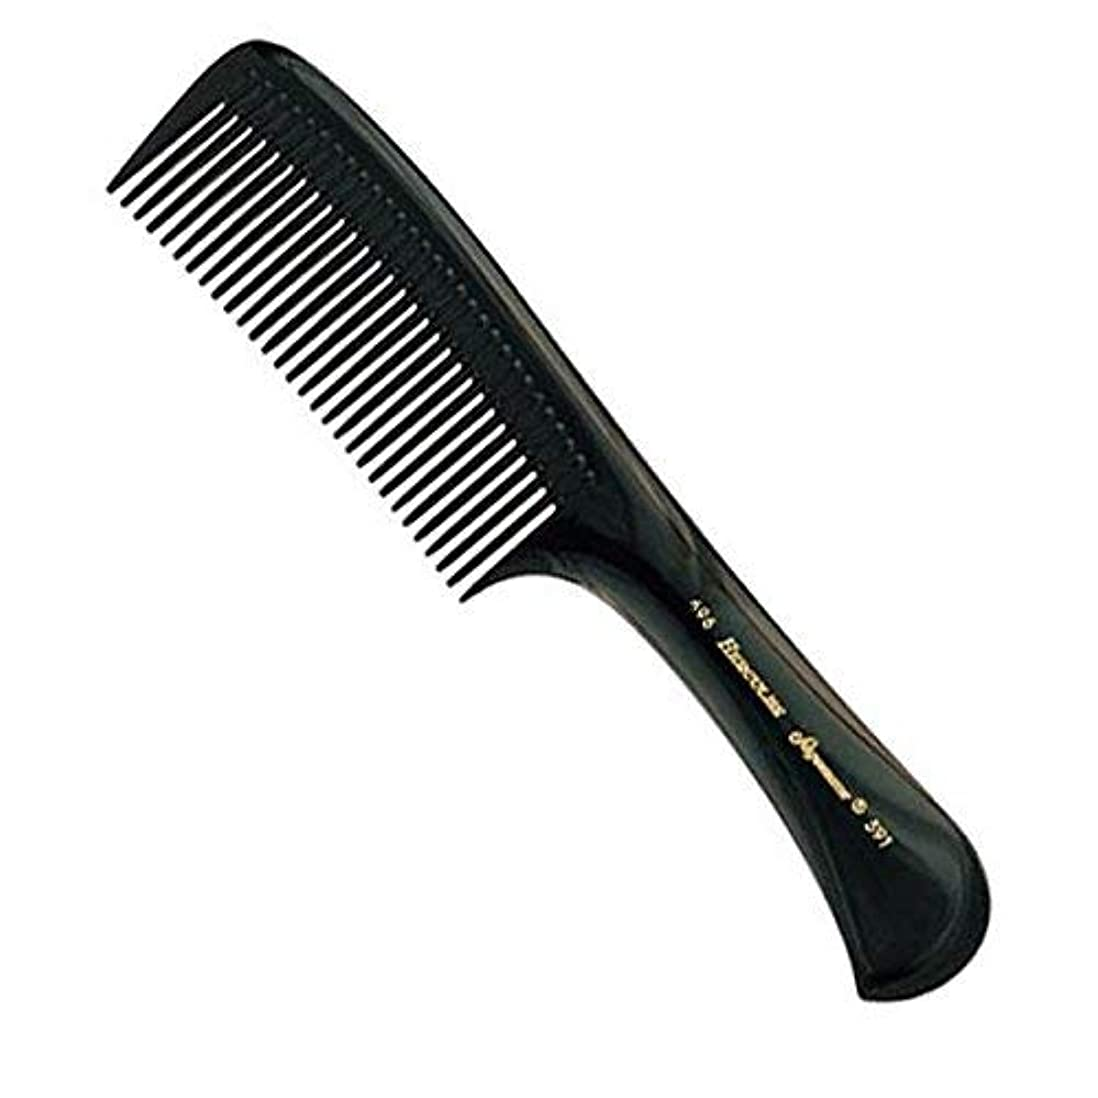 鎮痛剤現金ボトルHercules Sagemann Seamless Handle Detangling Hair Comb, 22.7 cm Length [並行輸入品]